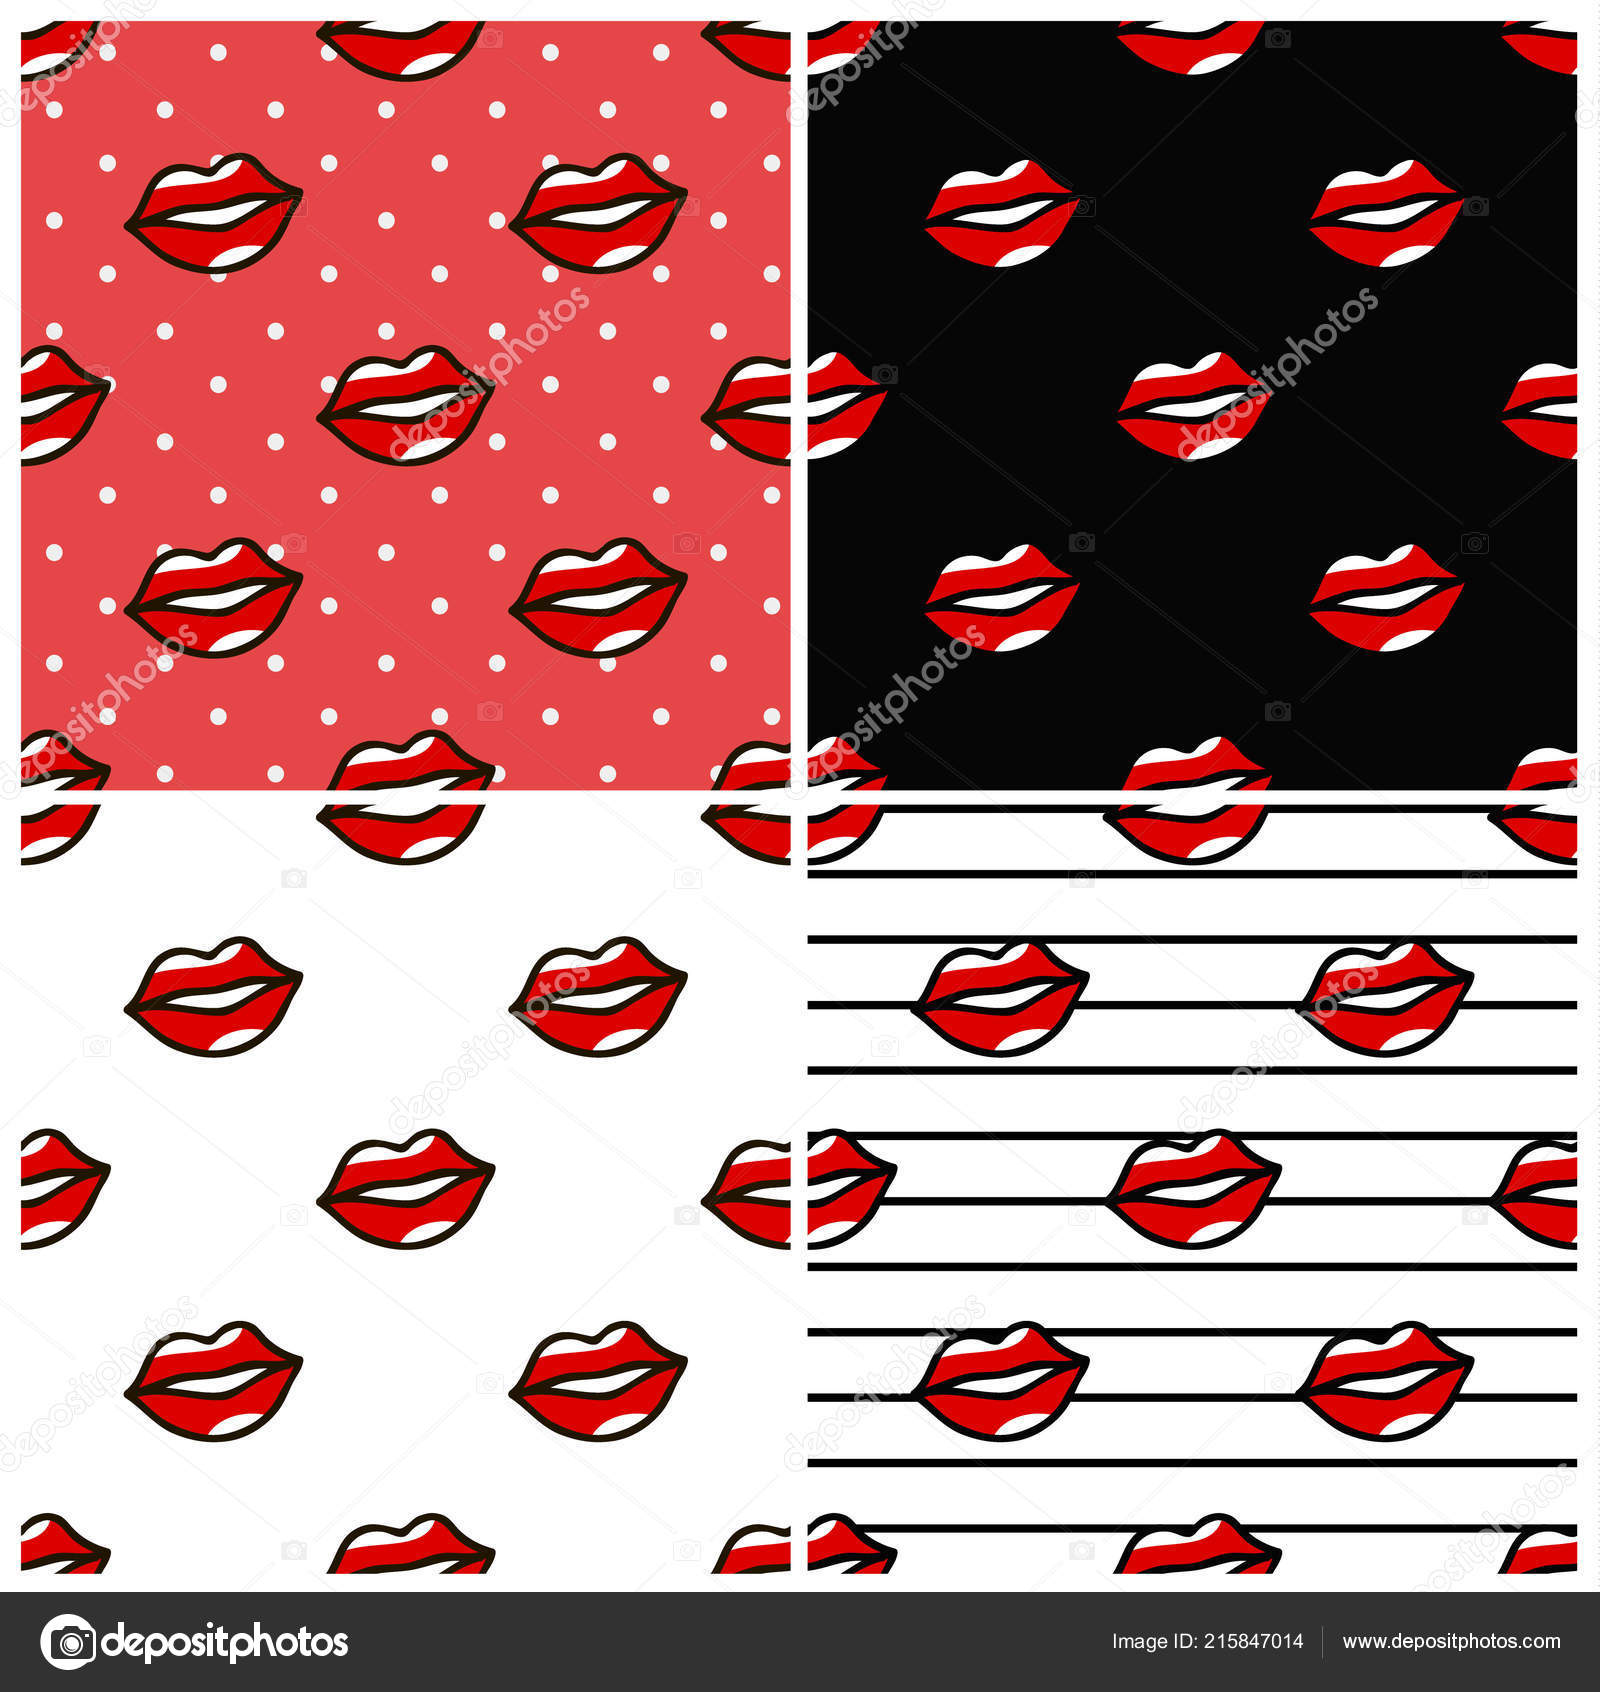 Red Lips Pattern Set In Cartoon Style On Dots Striped Black And